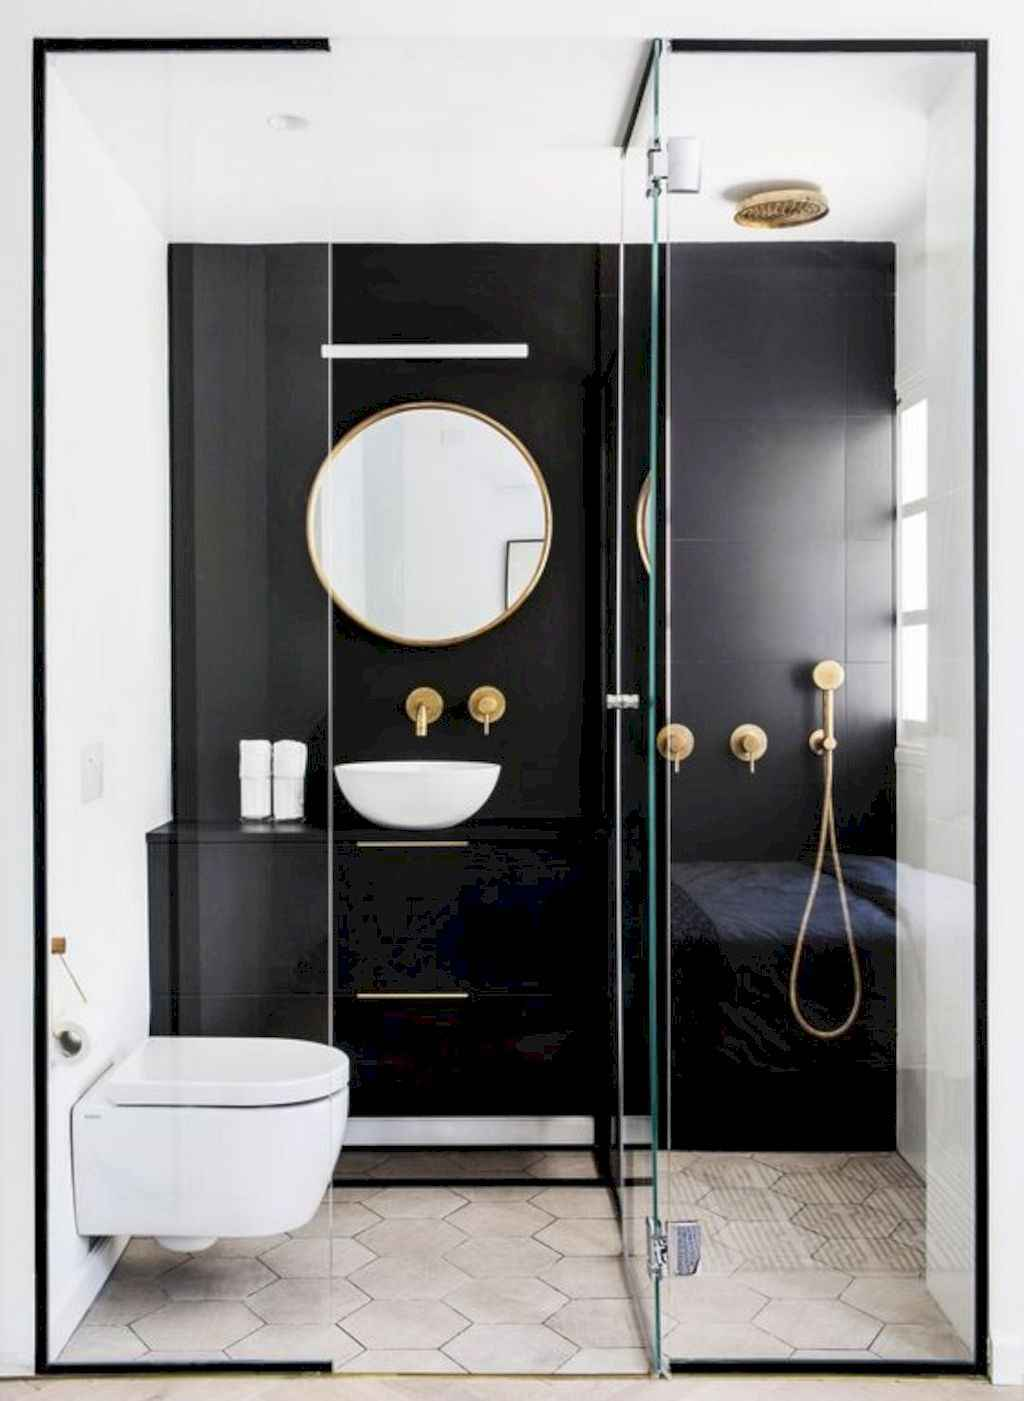 111 awesome small bathroom remodel ideas on a budget (100)